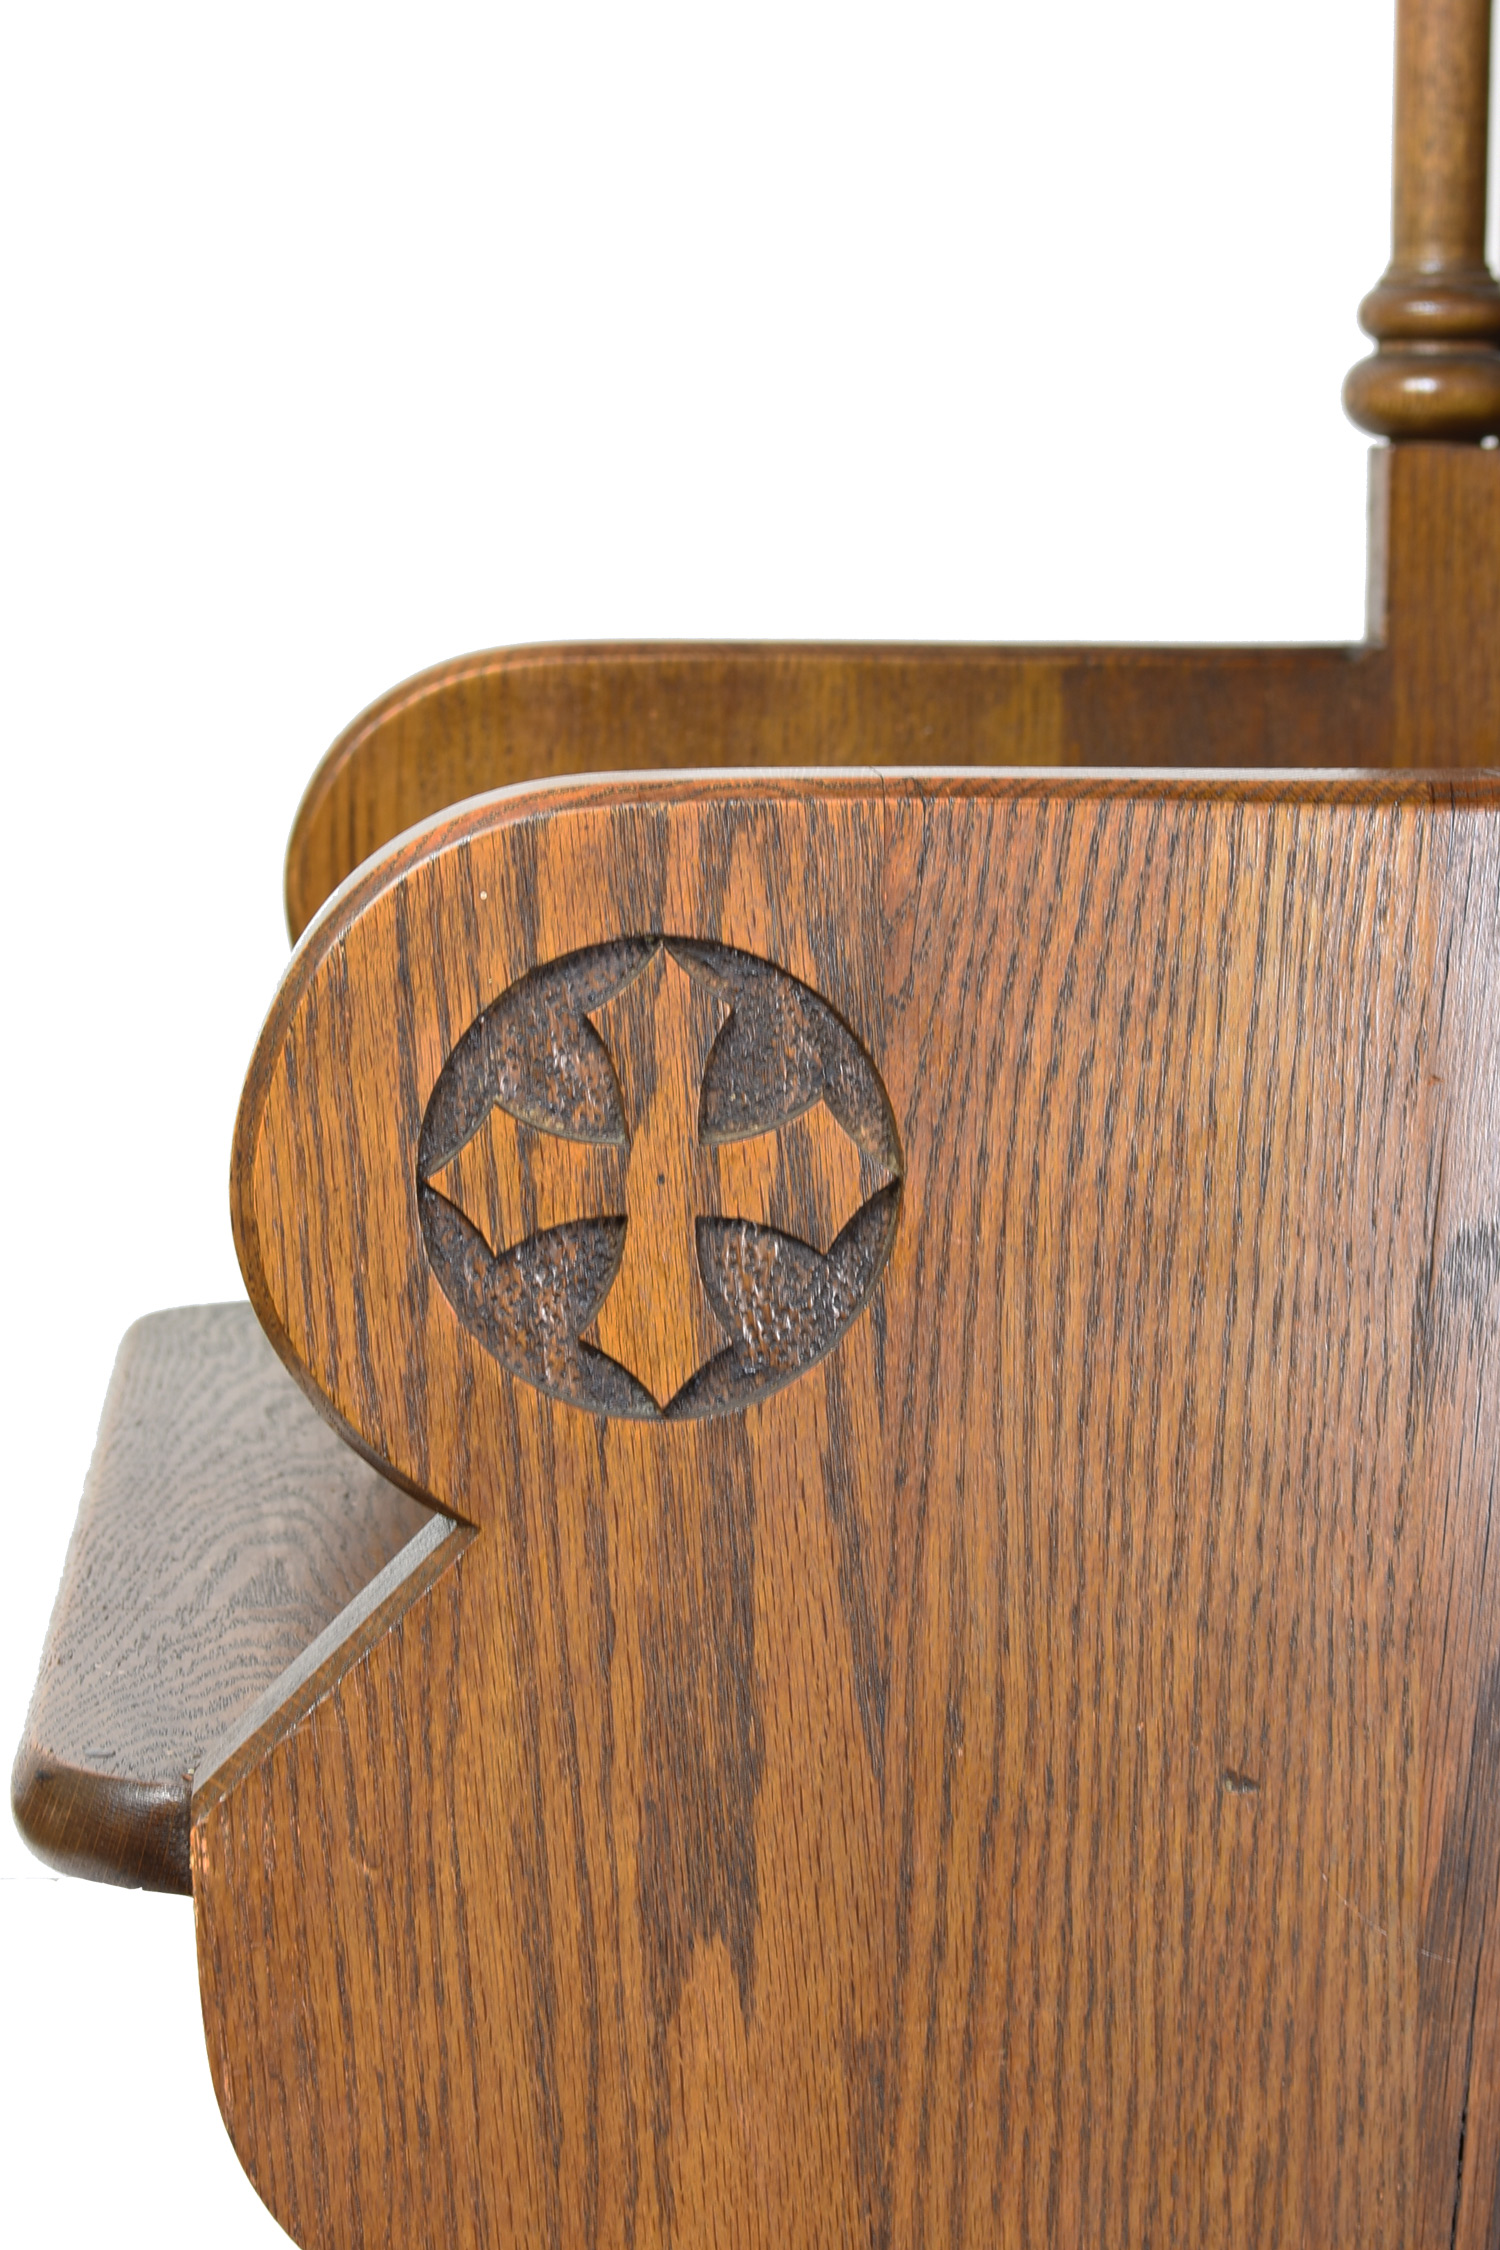 46363-small-clergy-chair-with-carved-lilies-on-side-cross-carving.jpg